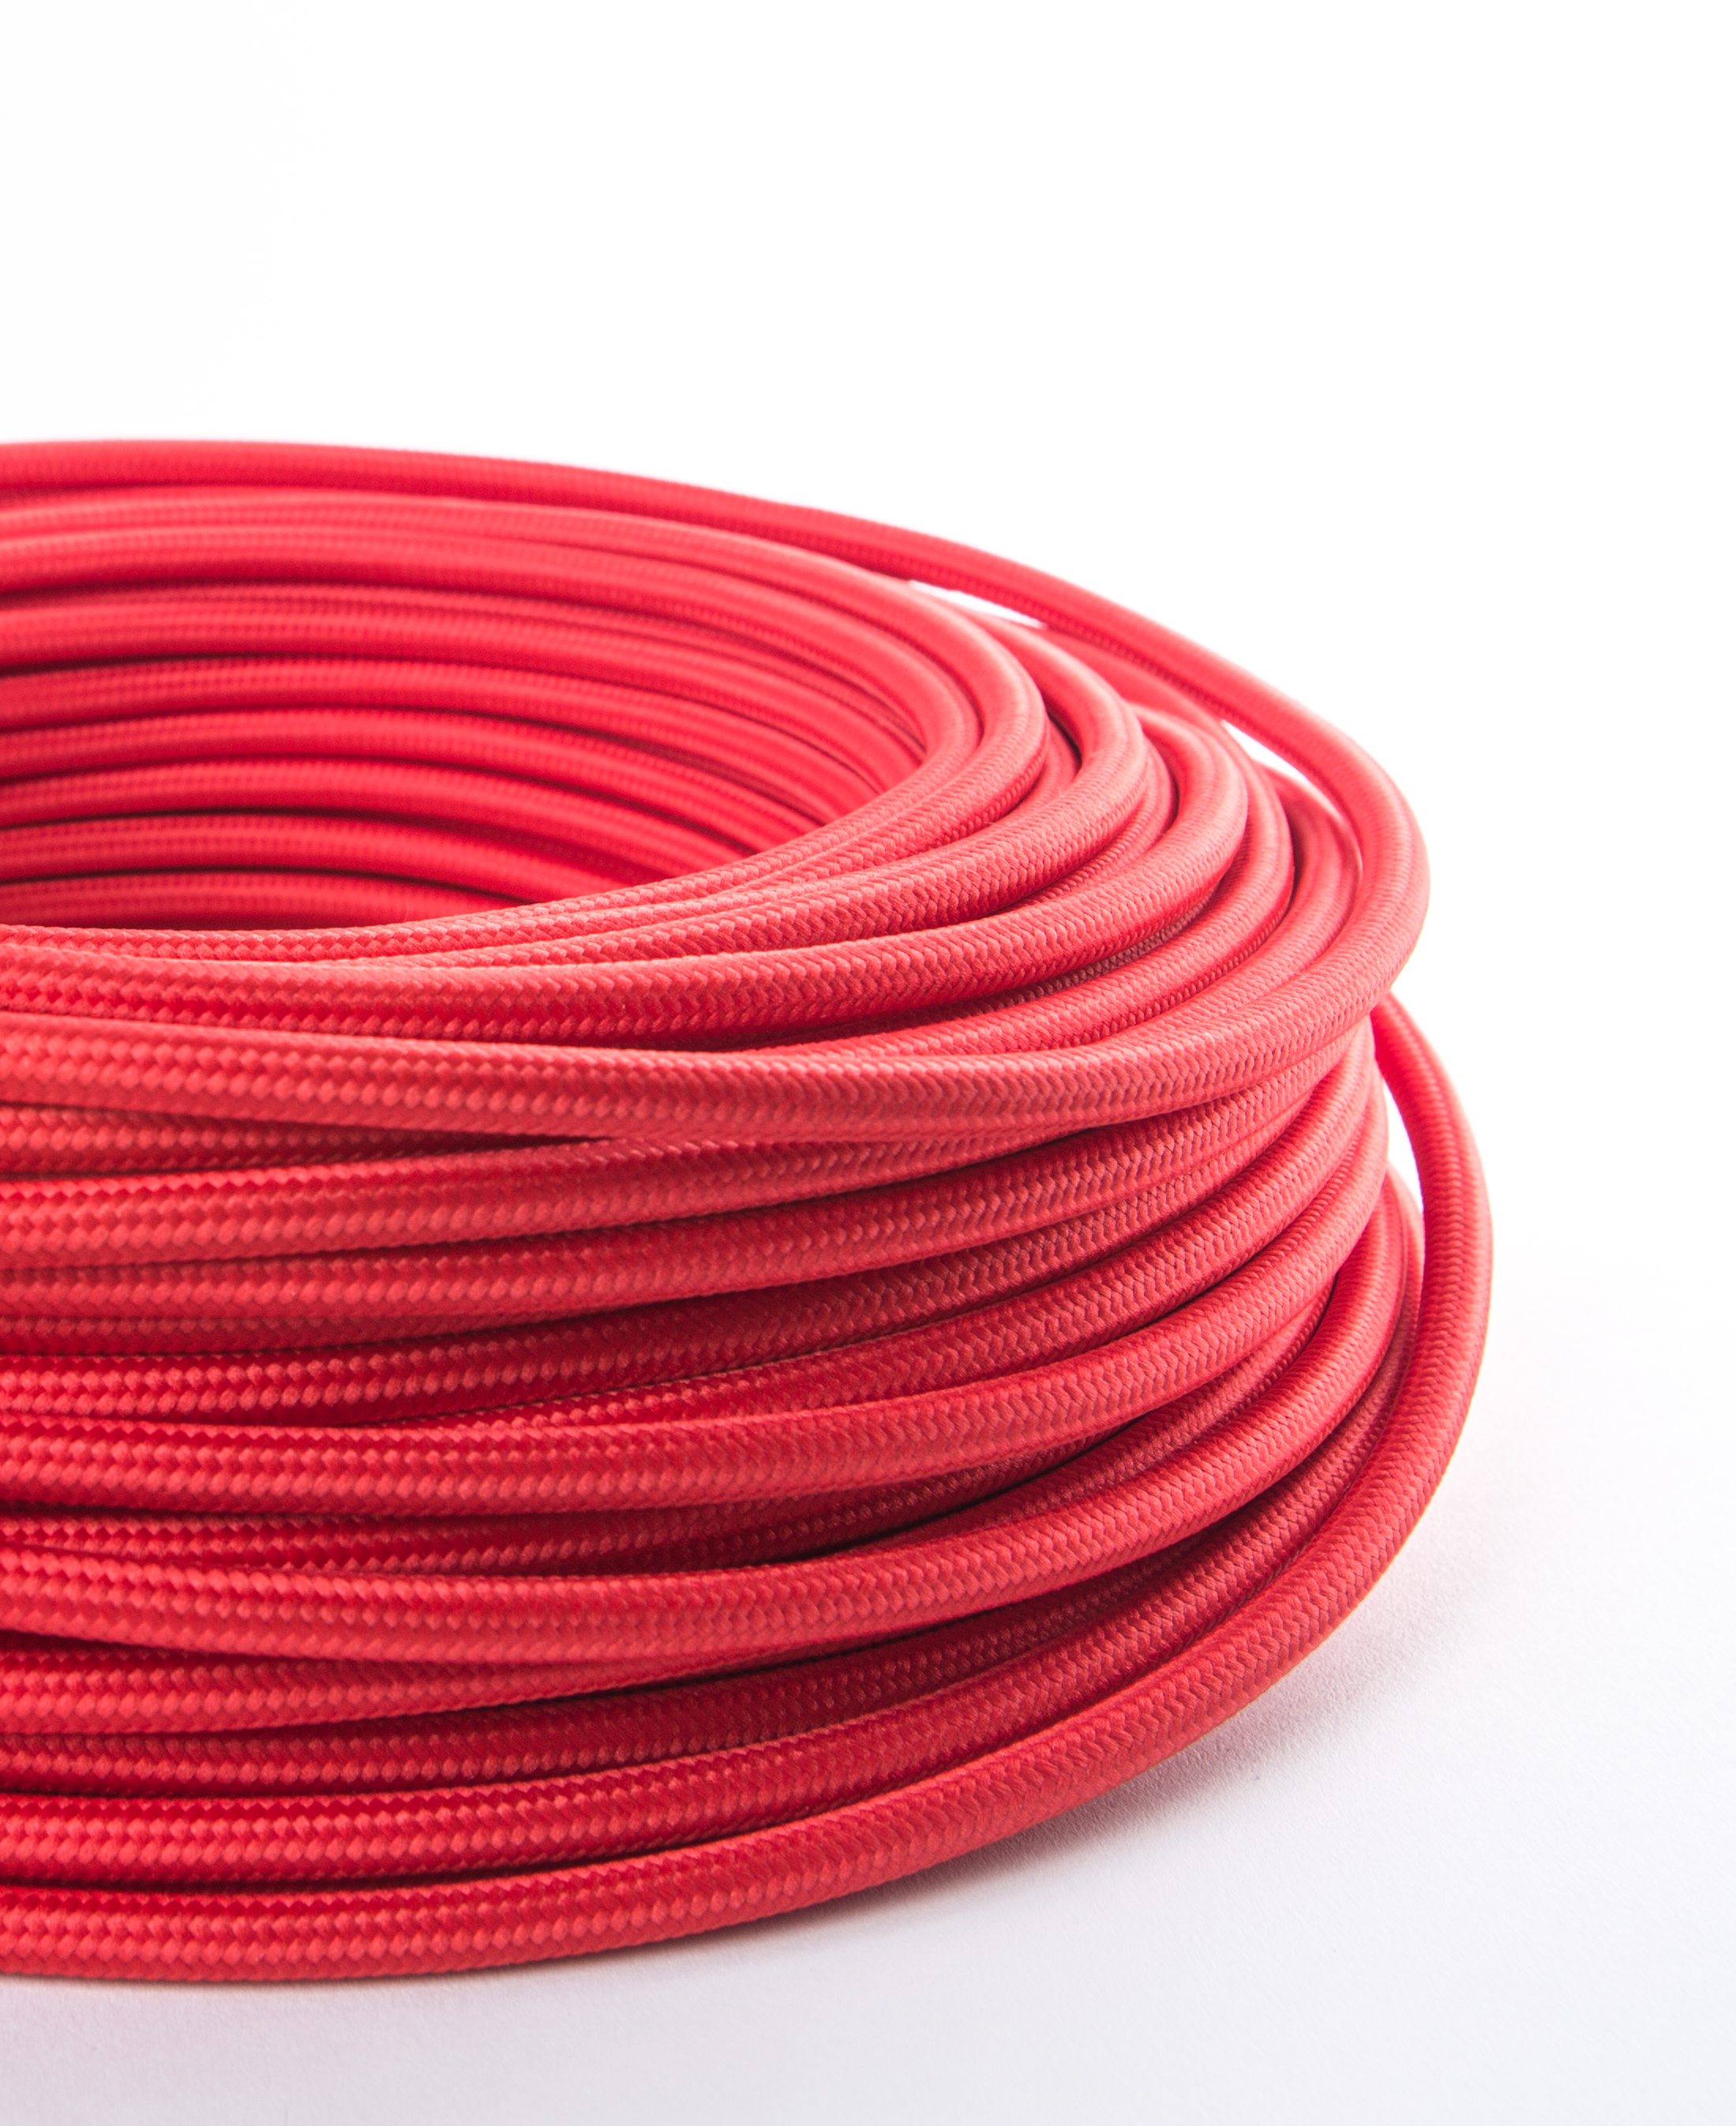 Vibrant Red Fabric Cable for Lighting 8 Amp 3 Core CE Certified